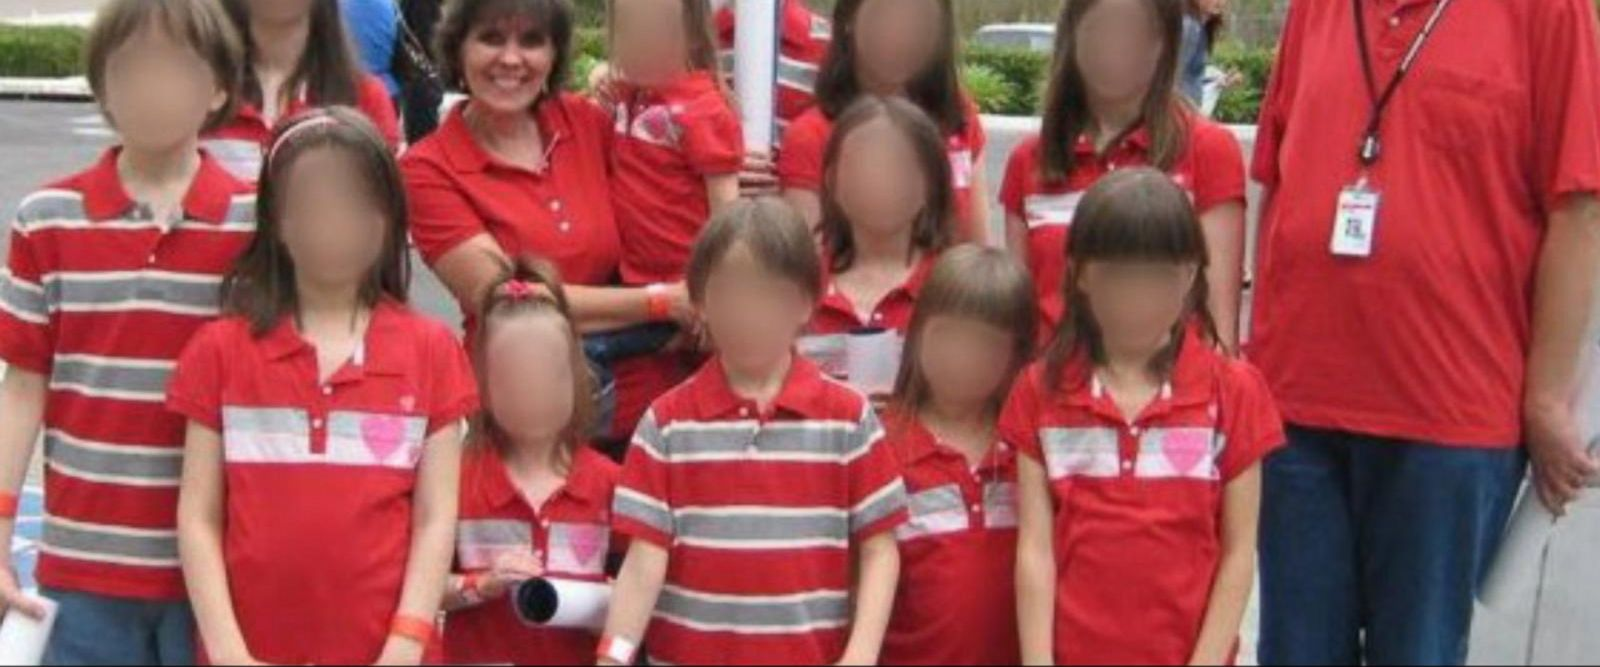 VIDEO: Estranged Aunt of 13 siblings rescued from home says something was off